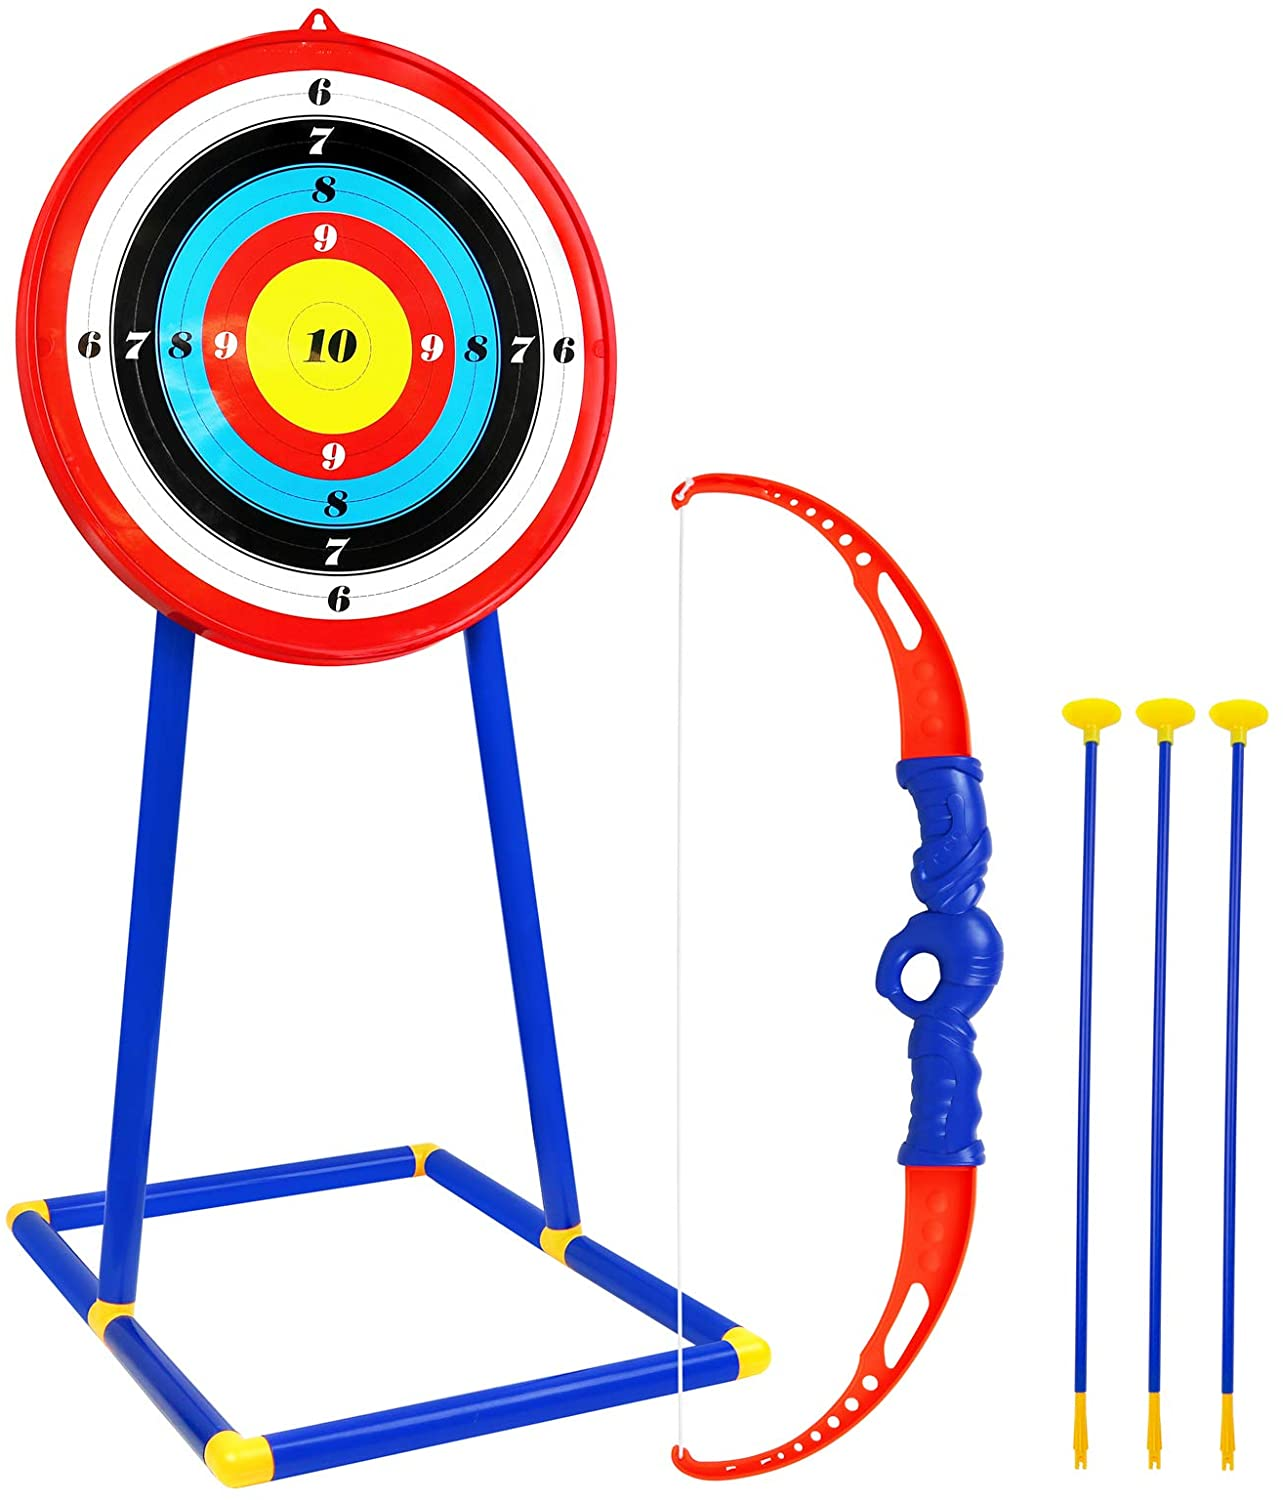 Review of Kiddie Play Toy Archery Set with Target and Suction Cup Arrows